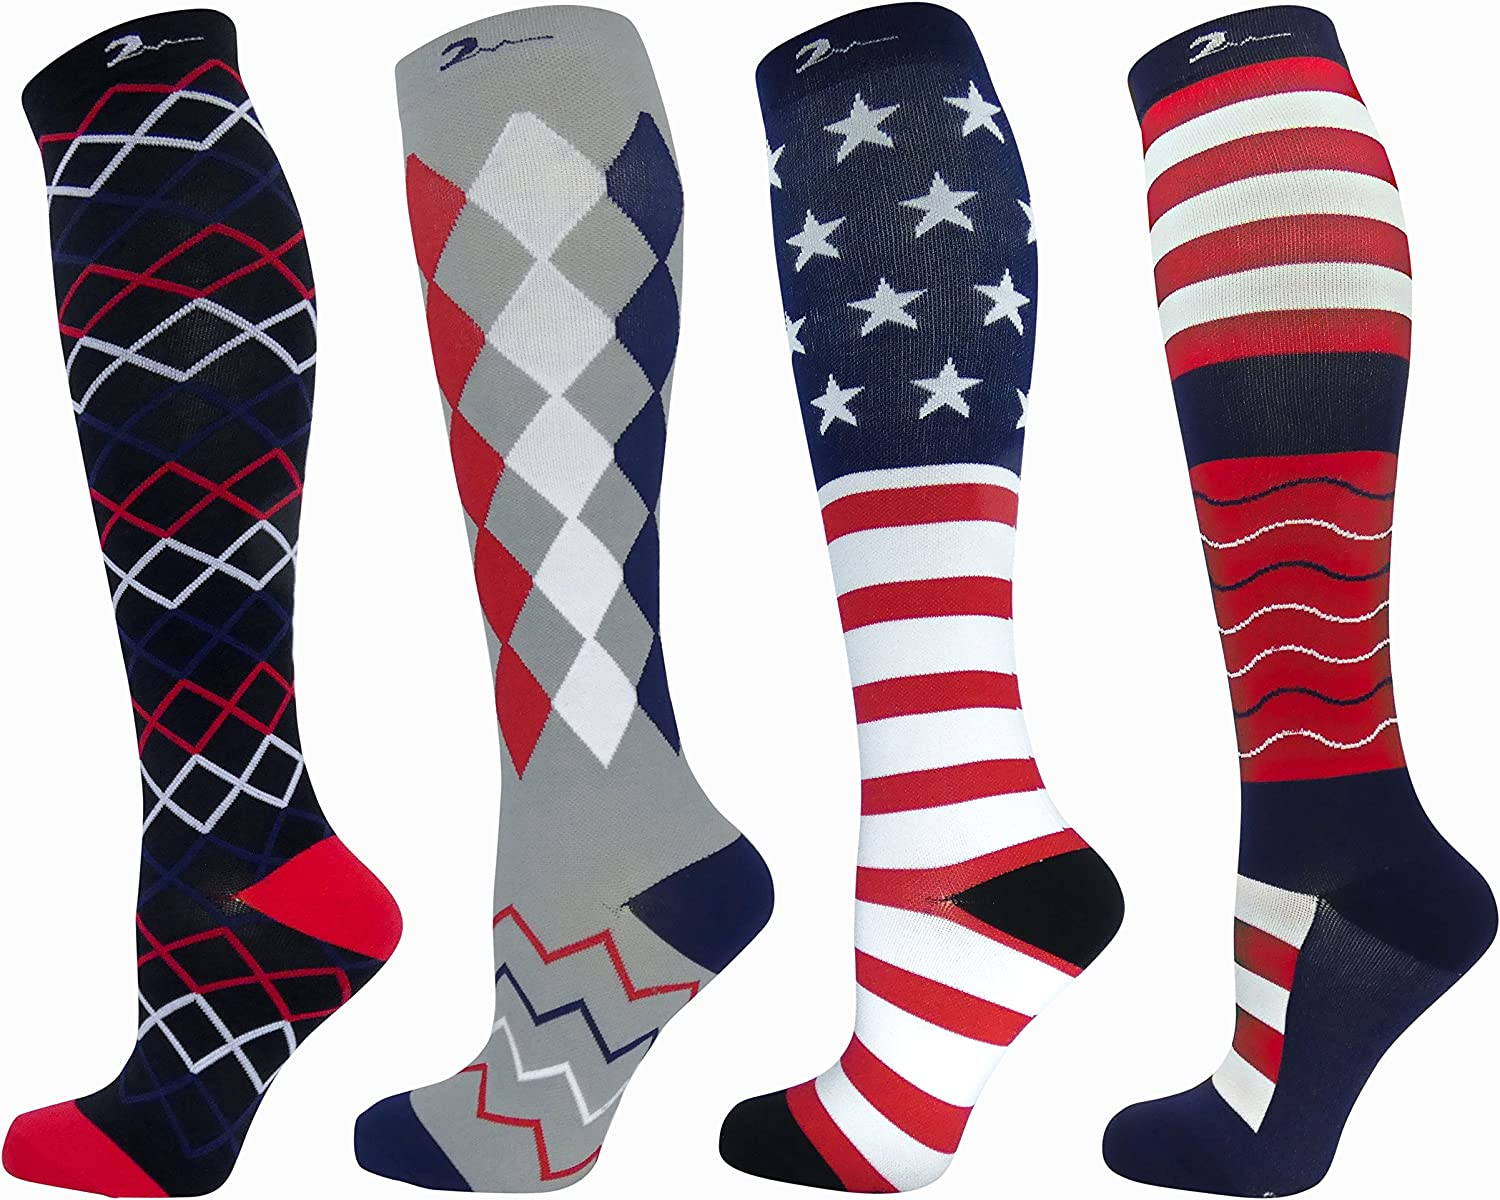 Swell Relief Patriotic Graduated Moderate Compression Sock Set of 4 Pair